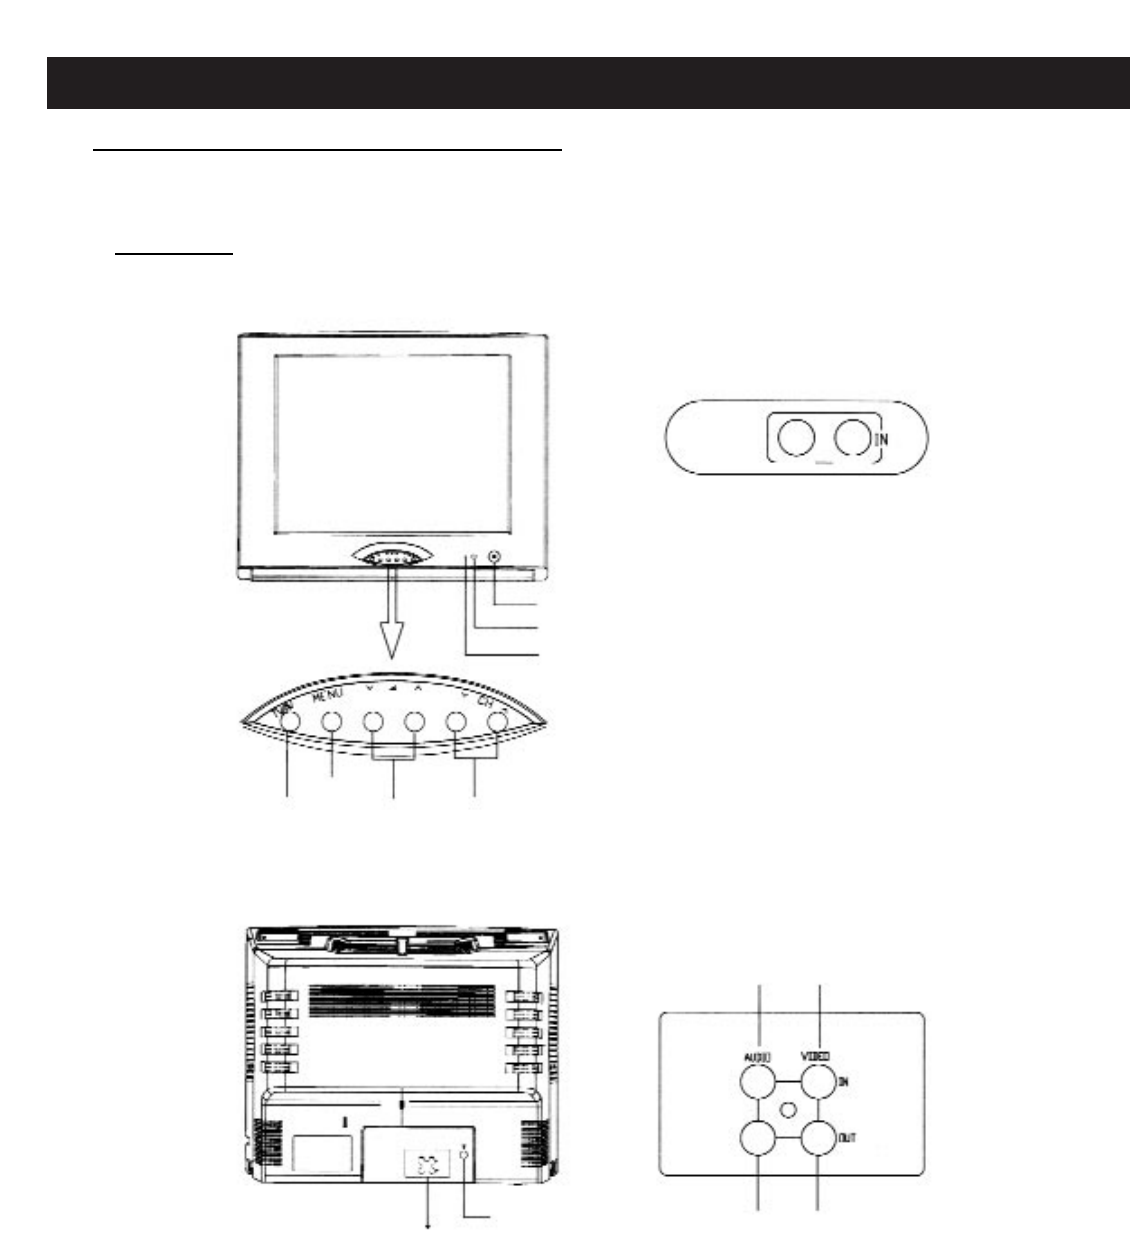 Page 10 of Apex Digital Flat Panel Television AT2002 User